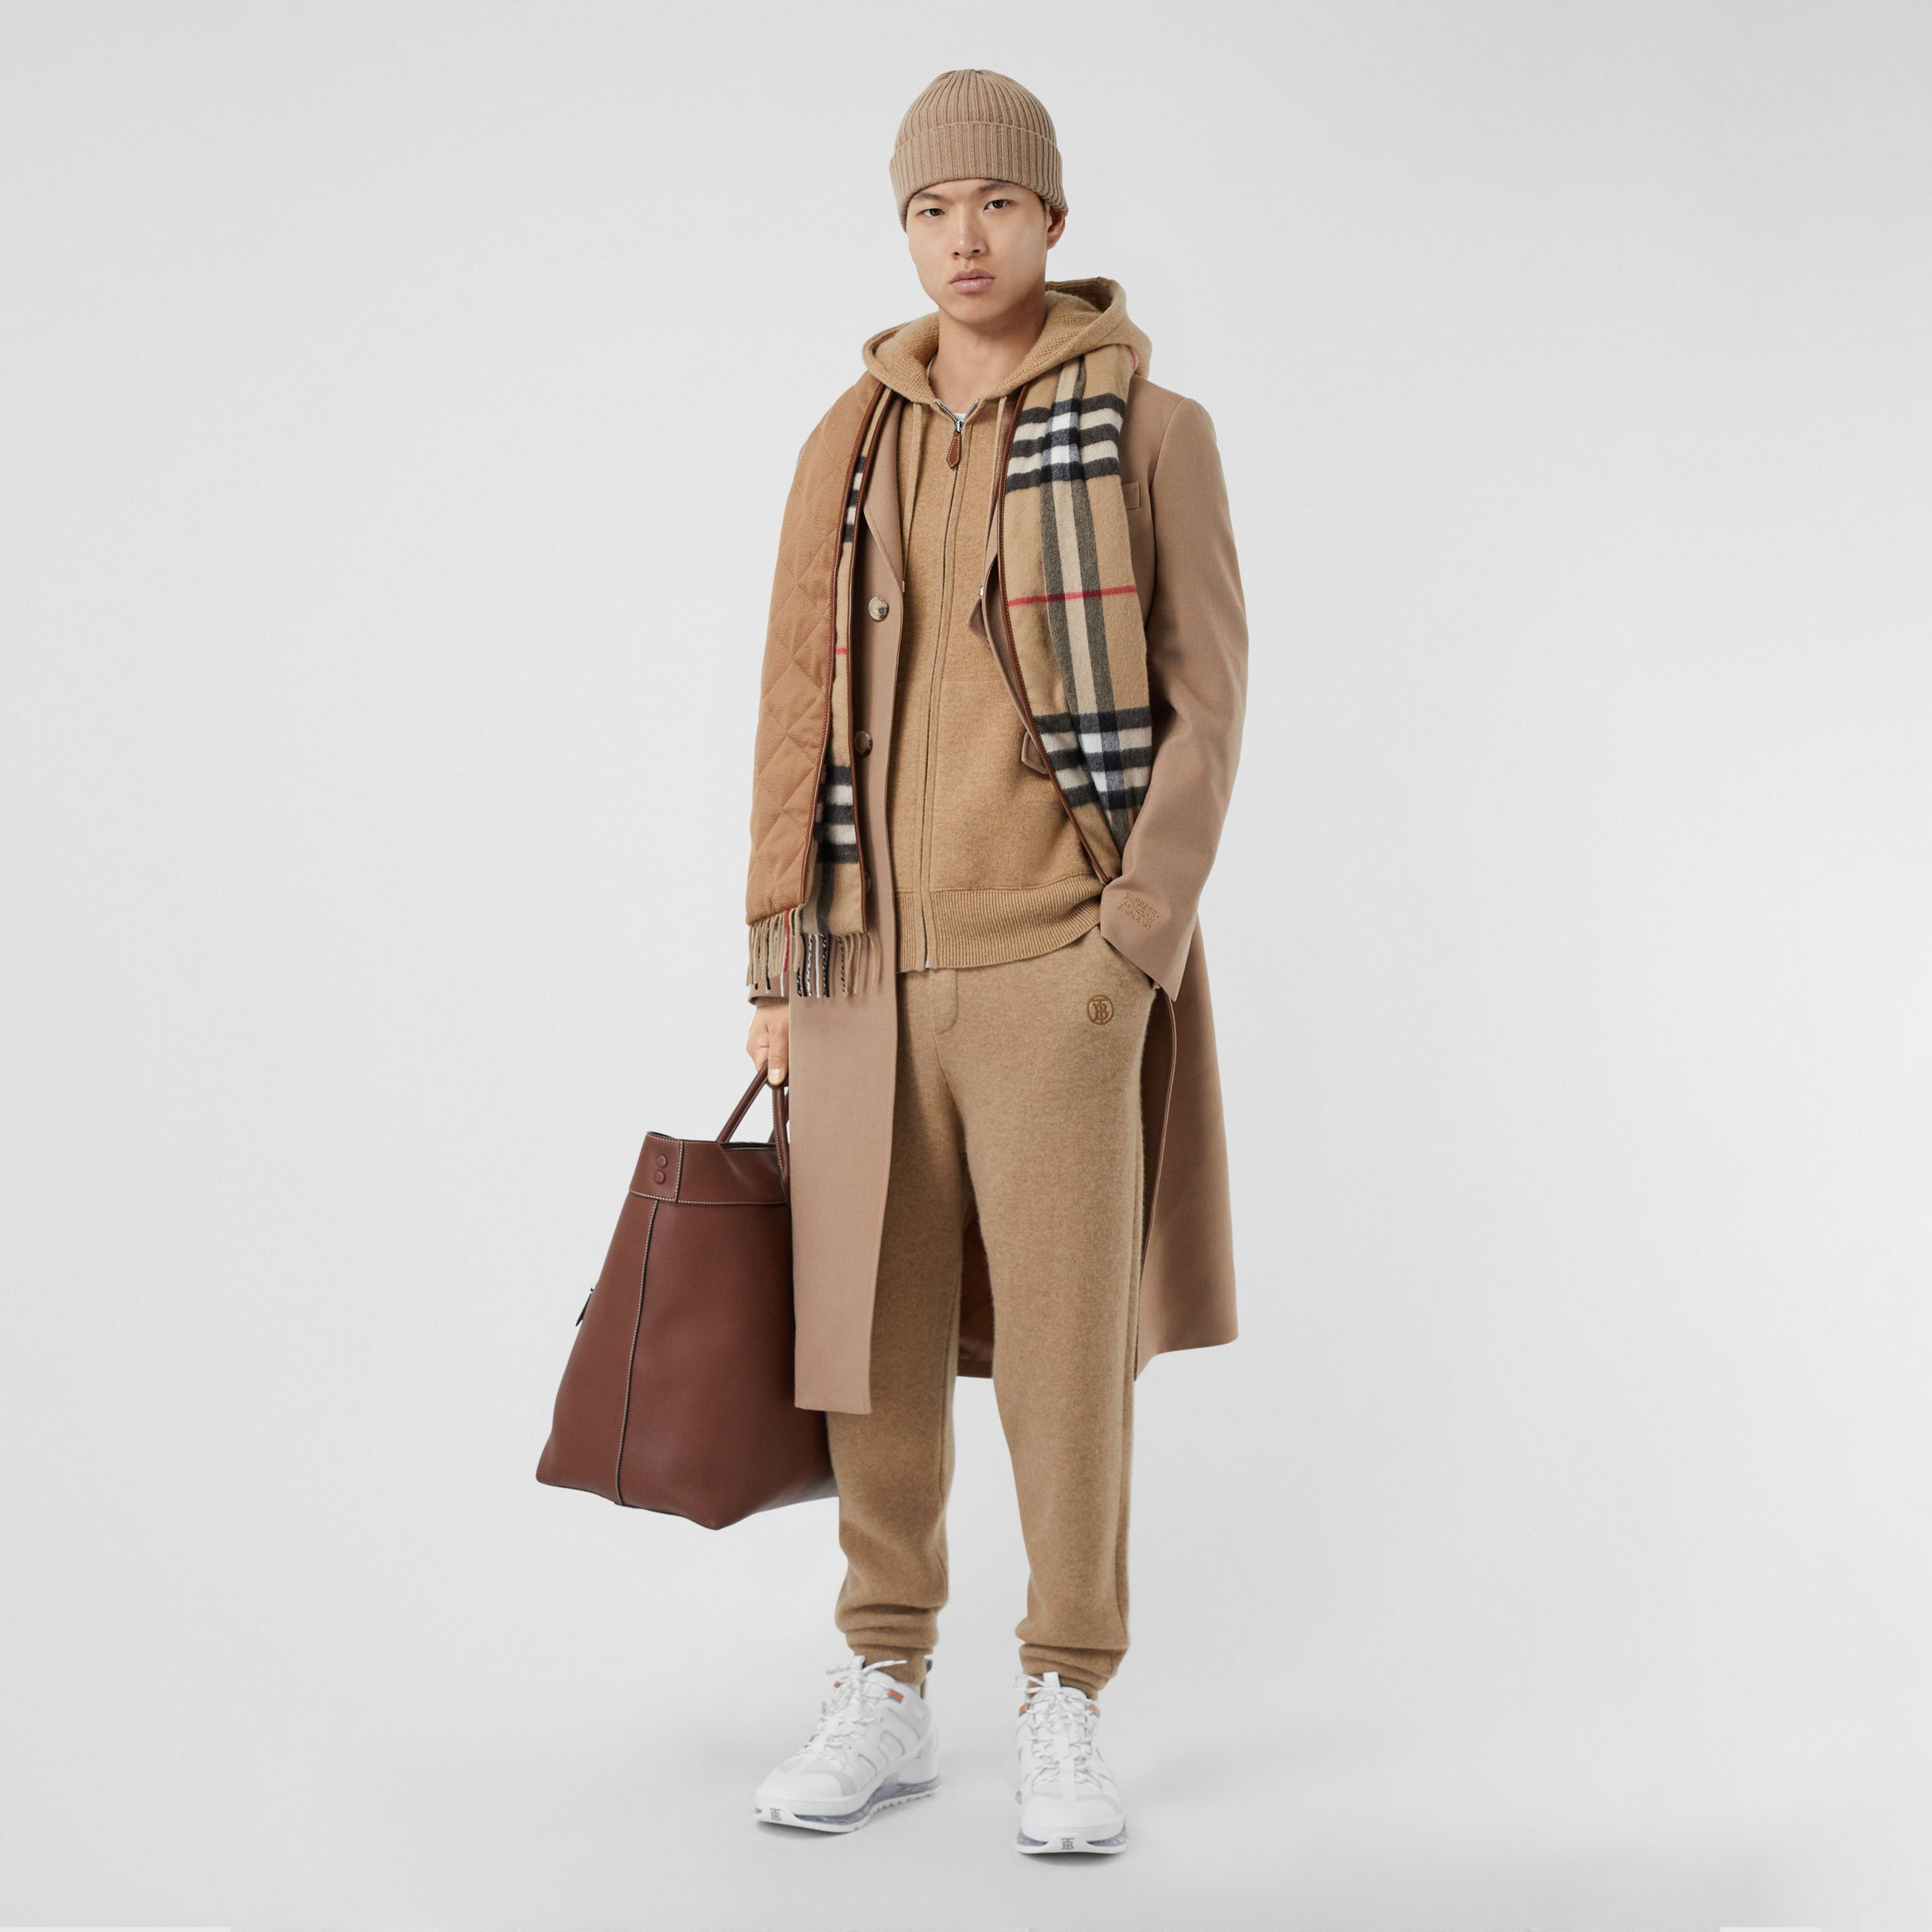 Monogram Motif Cashmere Blend Trackpants in Pale Coffee - Men | Burberry Canada - 1